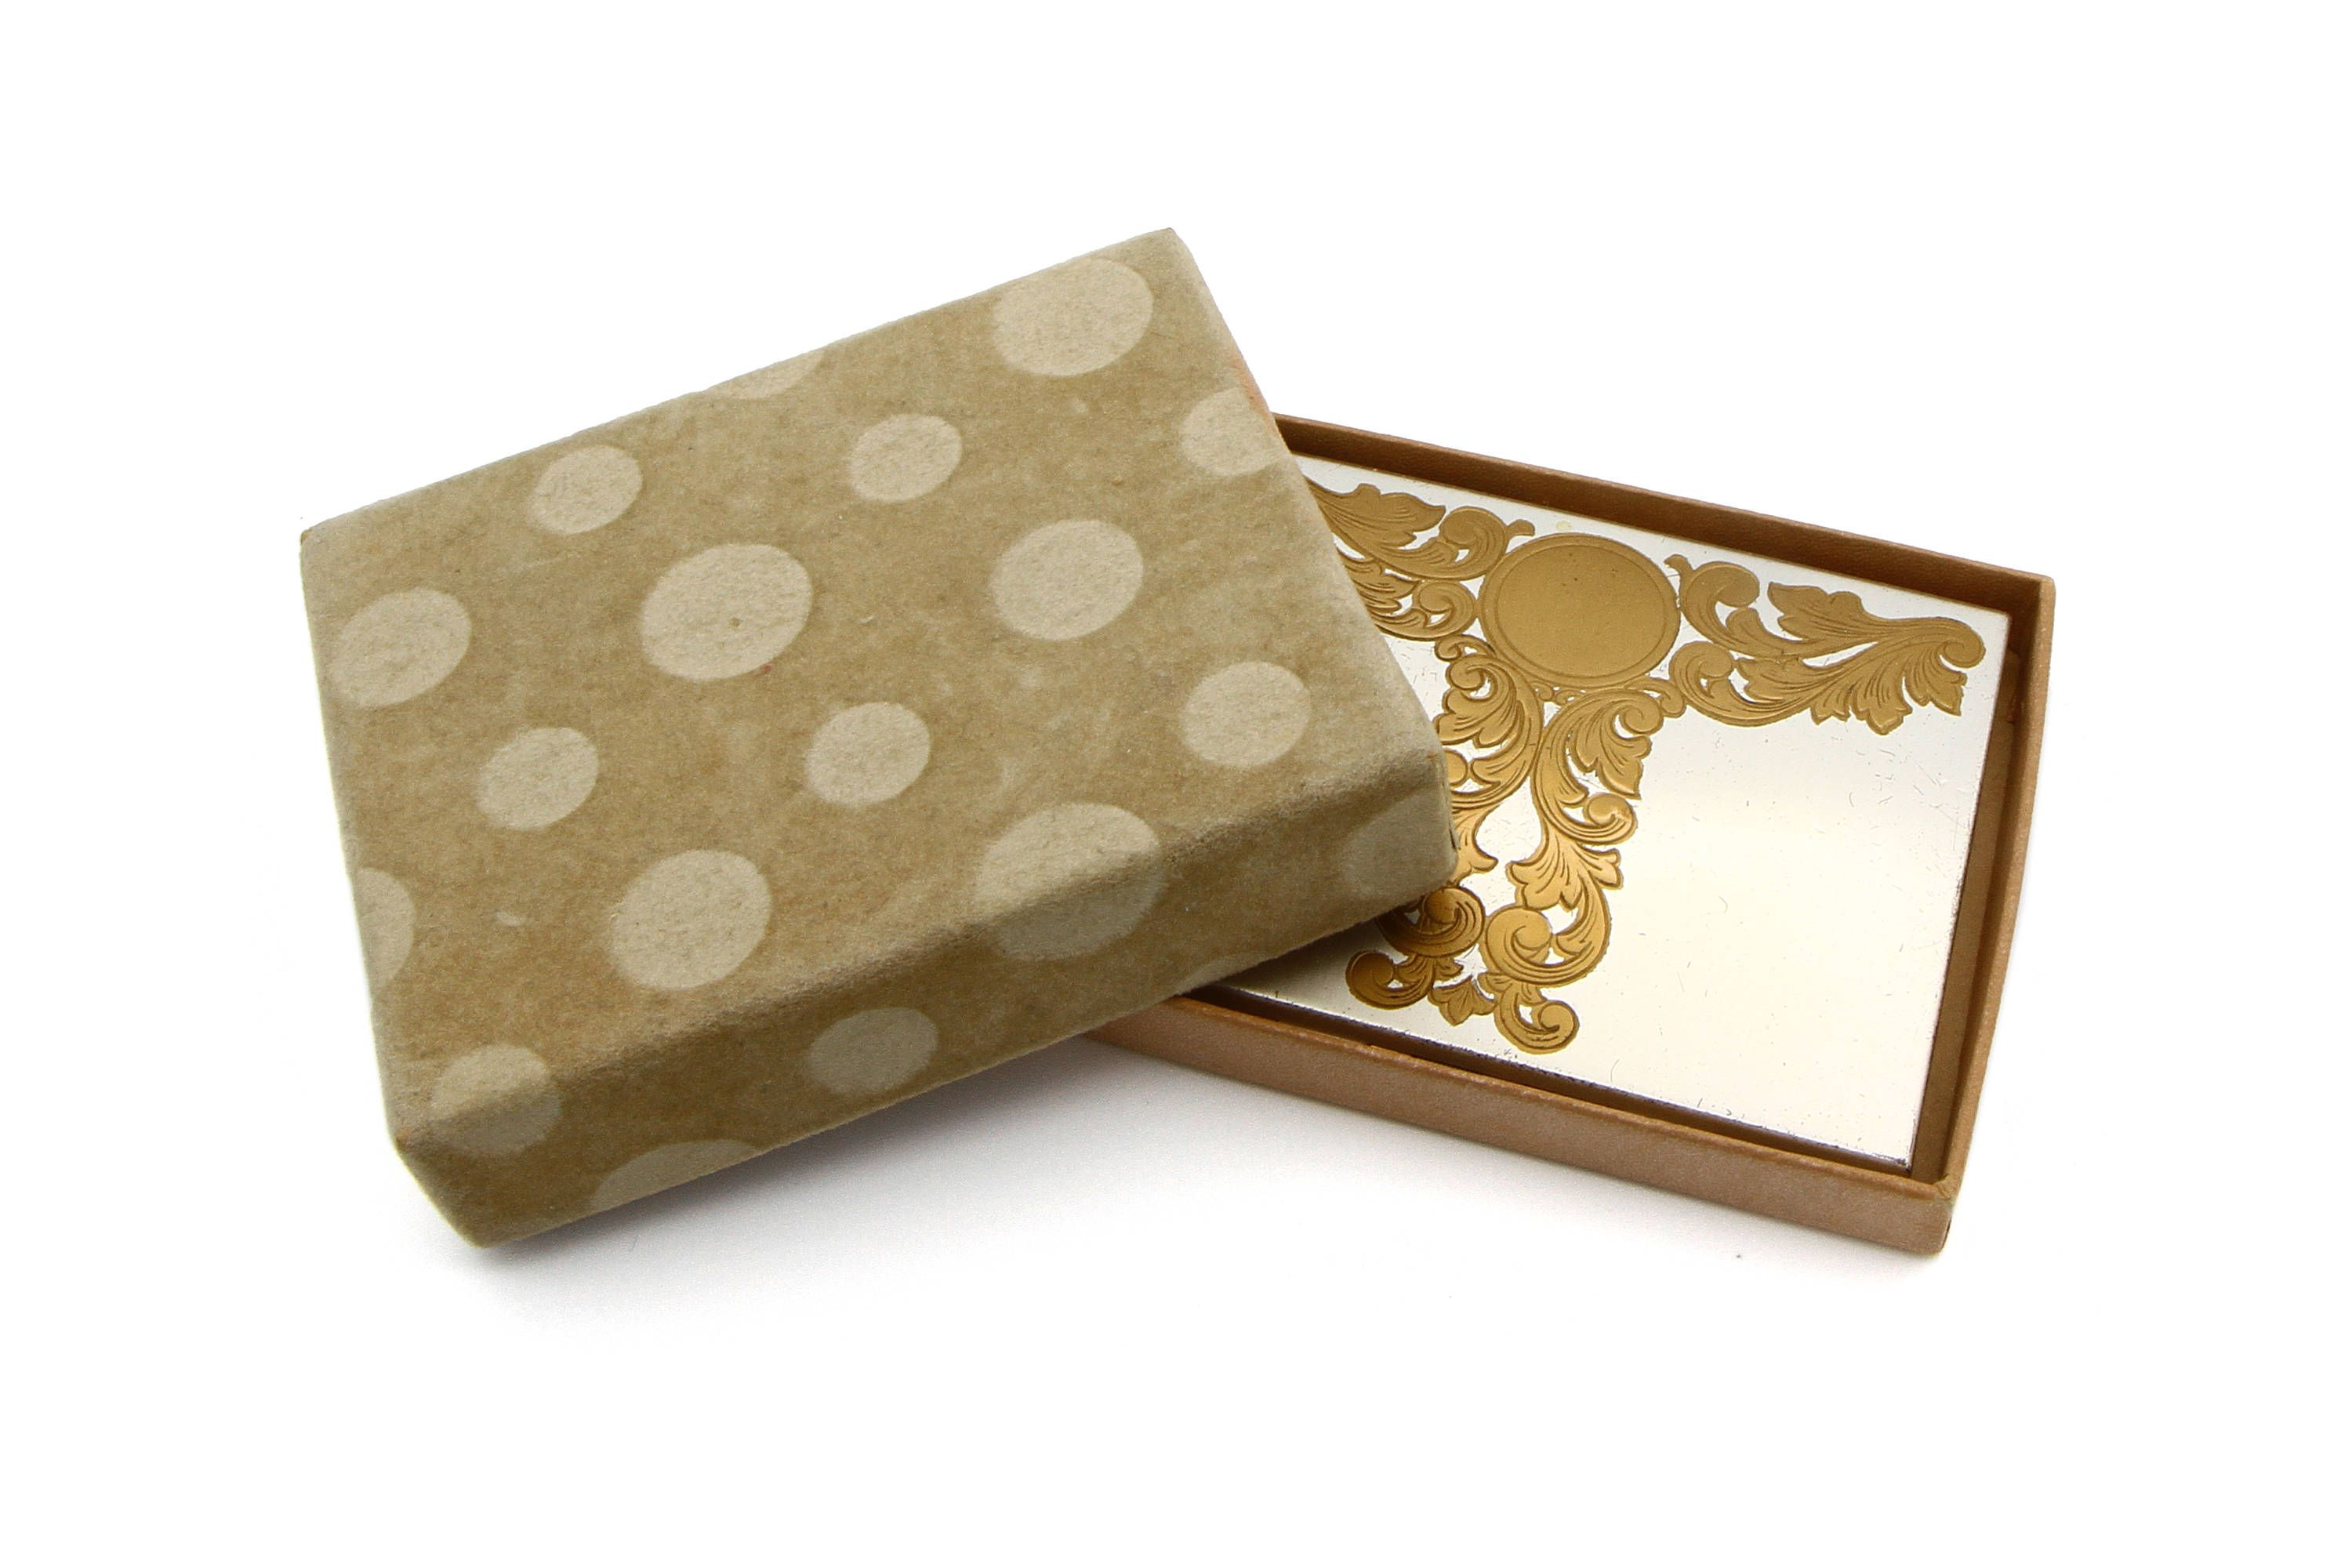 Metal Cigarette Case, Two Tone Gold Silver, Business Card Holder ...